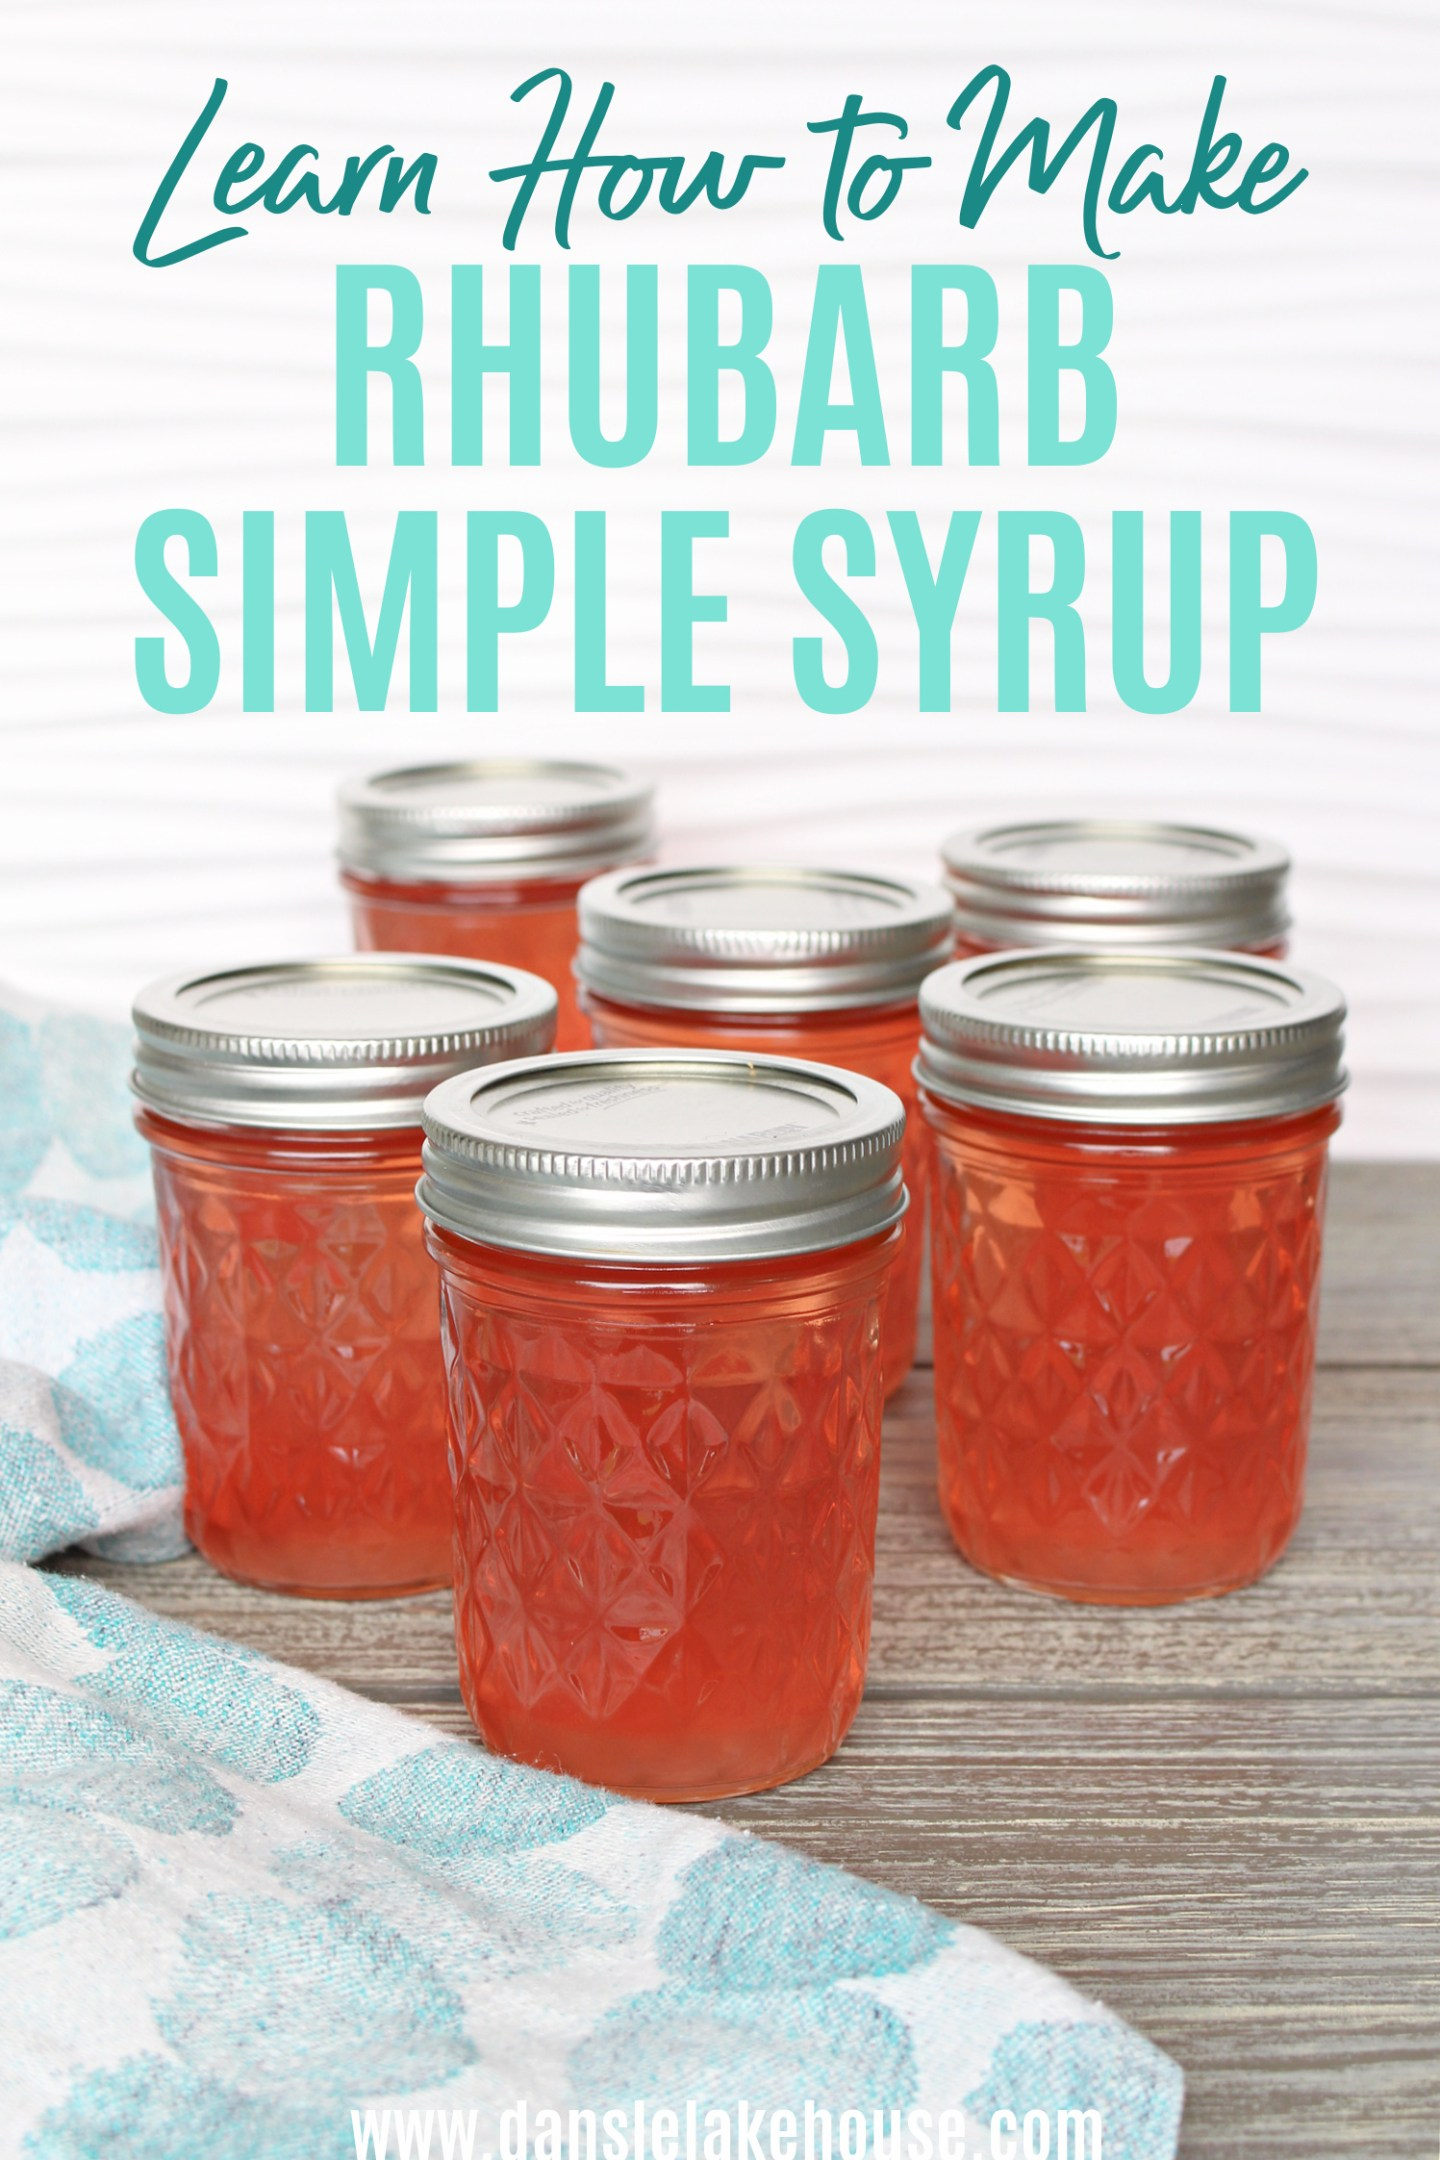 Learn How to Make Rhubarb Simple Syrup